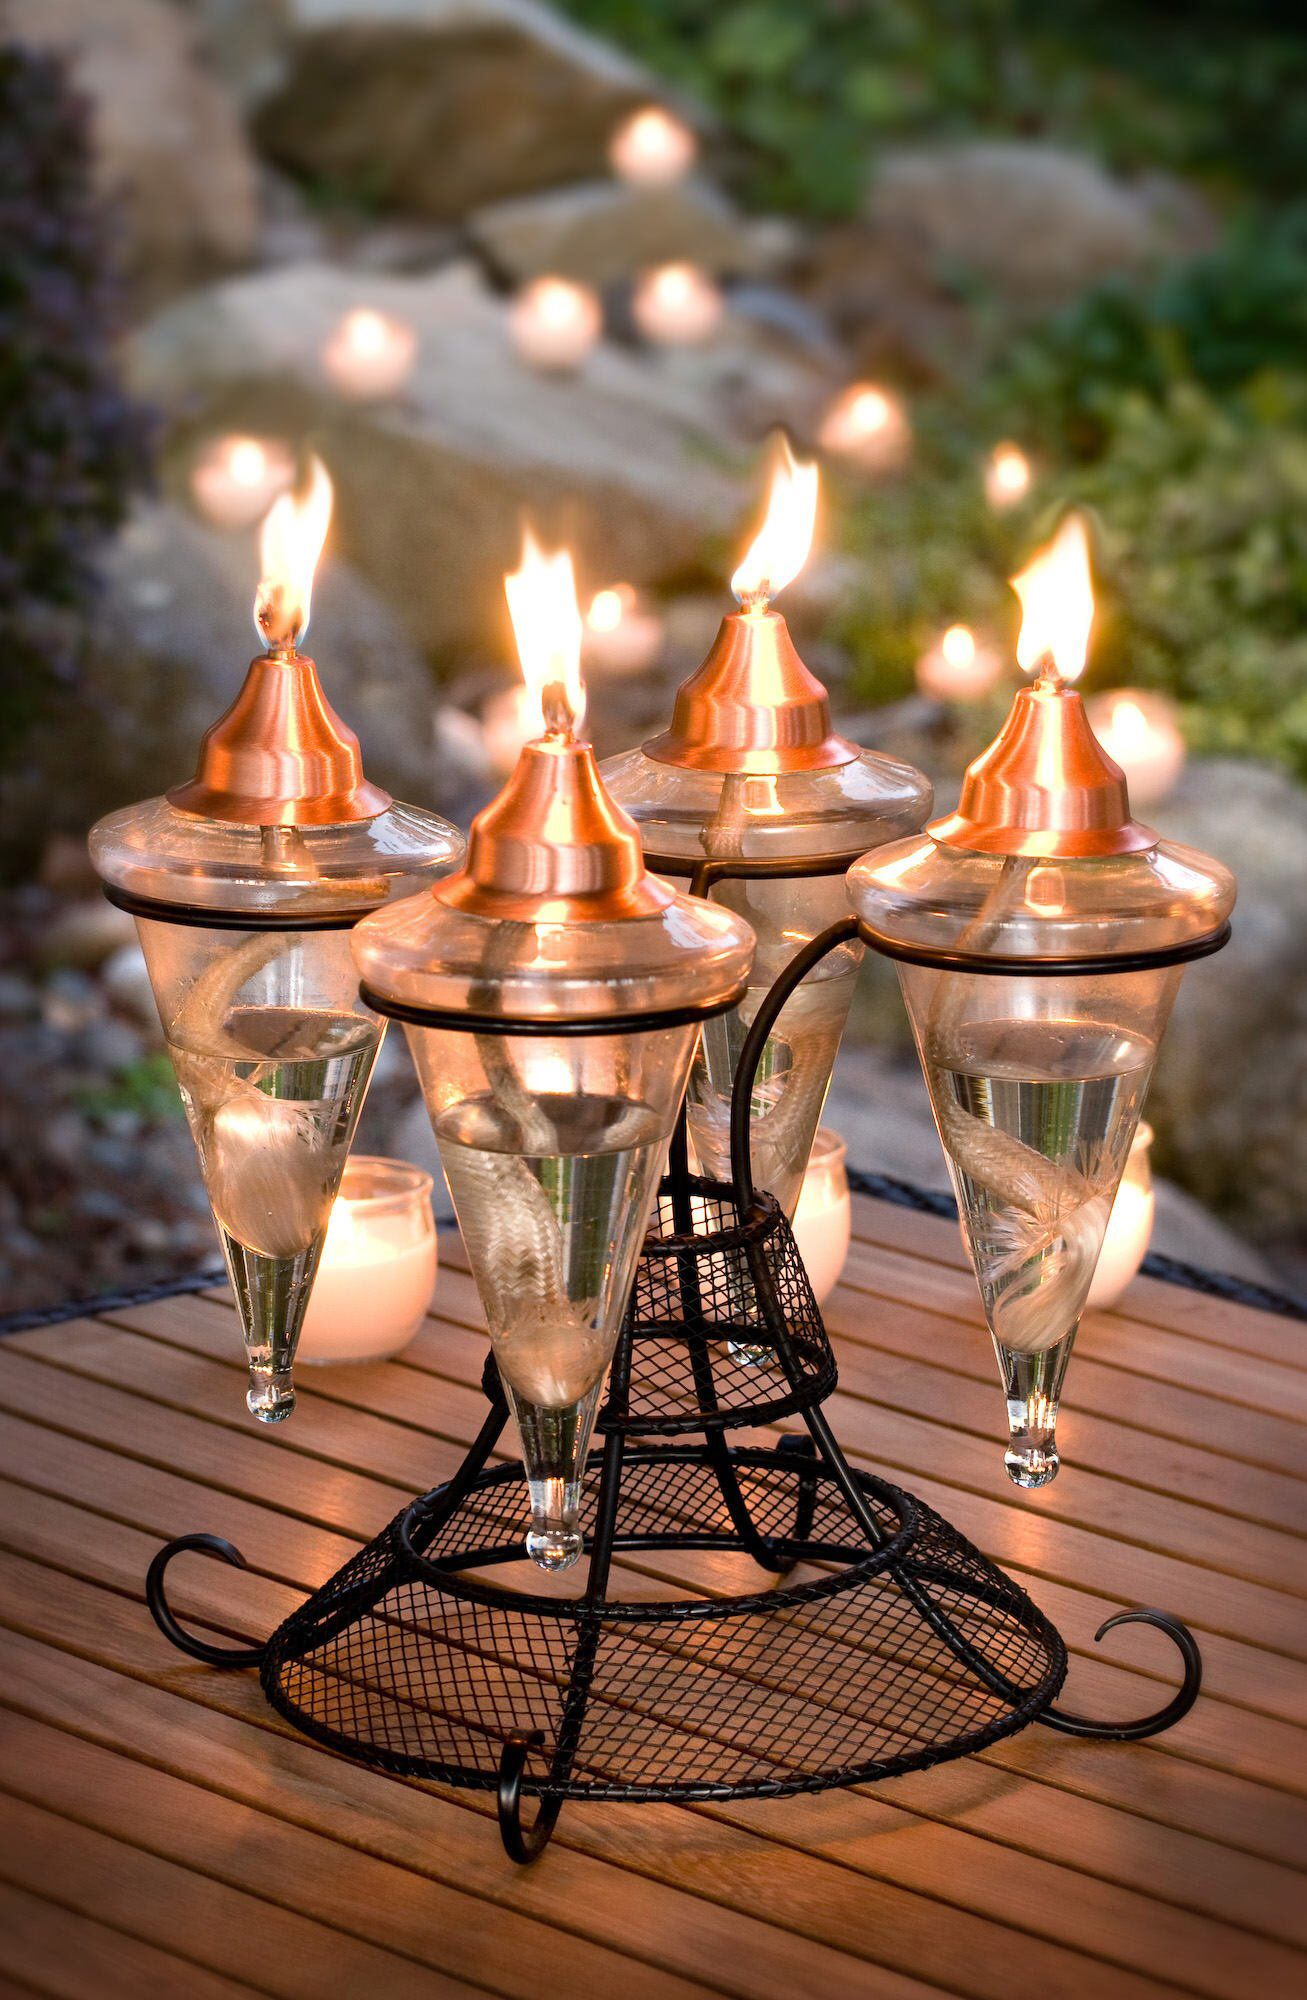 Unique Gift Idea Glass Torch Outdoor Lighting H Potter Tabletop